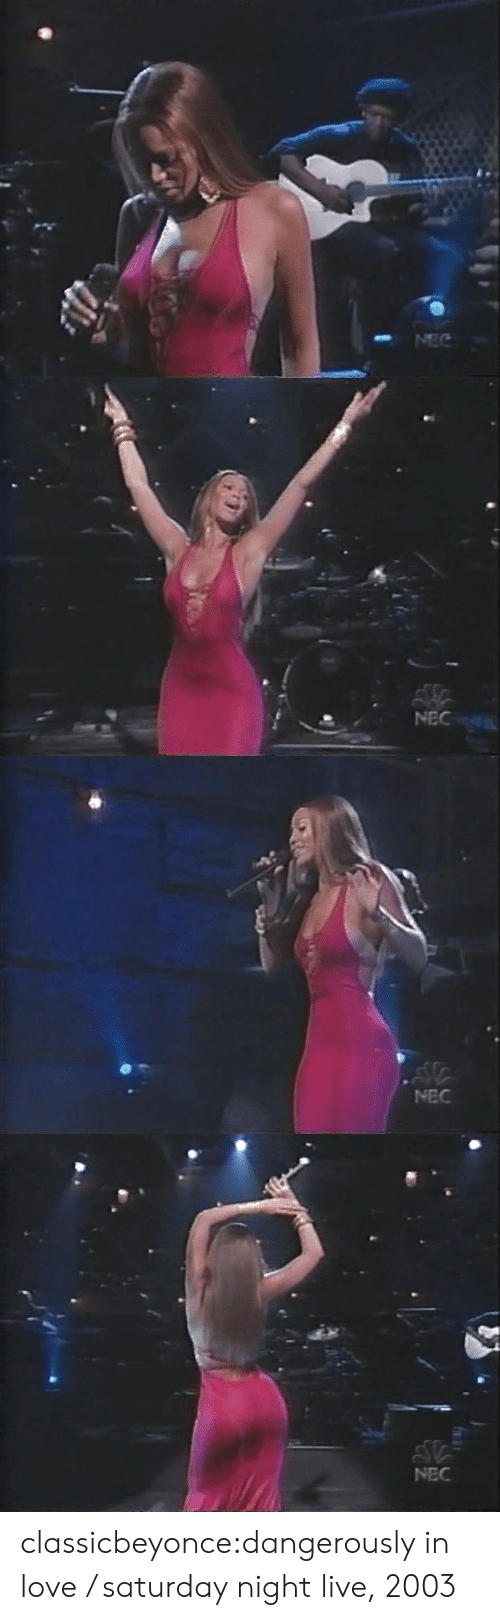 Saturday Night Live: NEC   l in  NEC   NEC classicbeyonce:dangerously in love / saturday night live, 2003